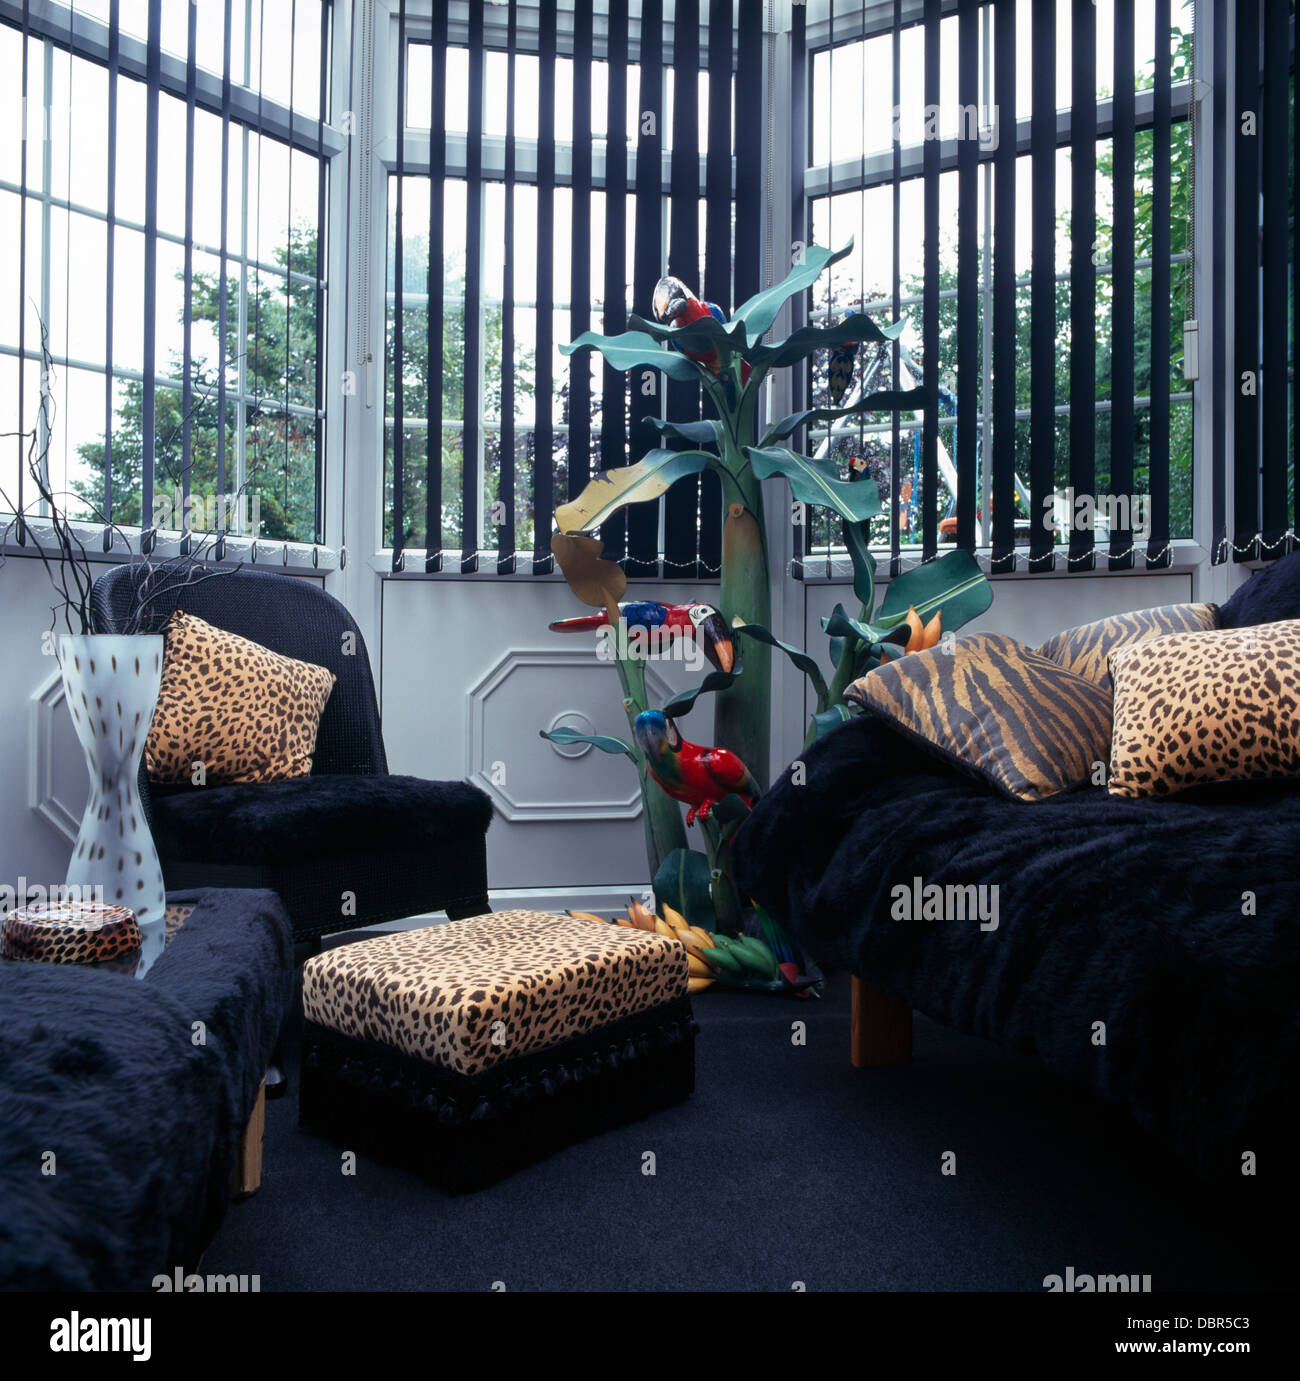 Animal Print Cushions On Black Armchairs And Sofa In Front Of Window With  Black Venetian